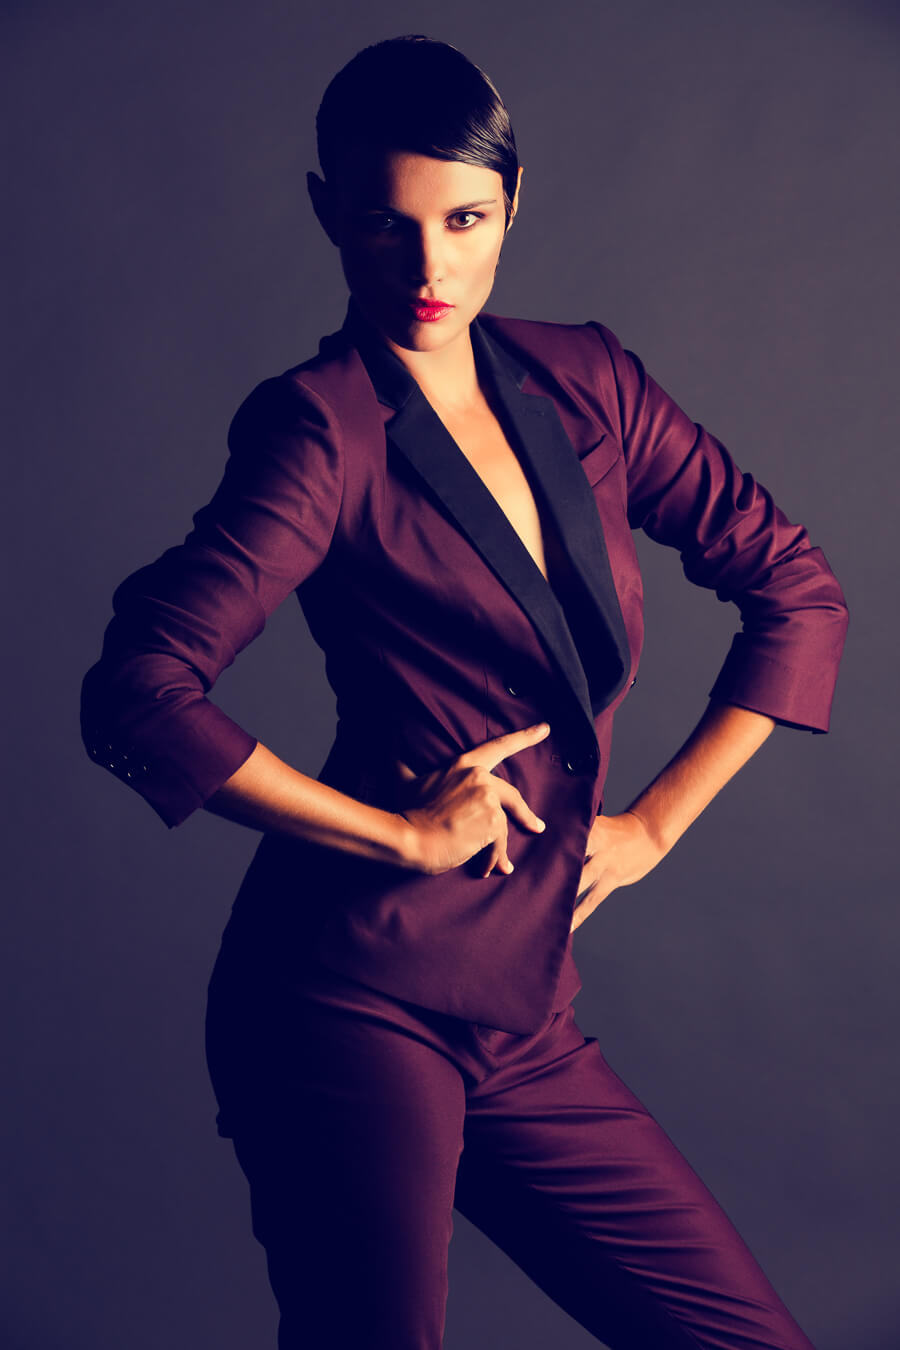 Gorgeous maroon suit with model for fashion shoot